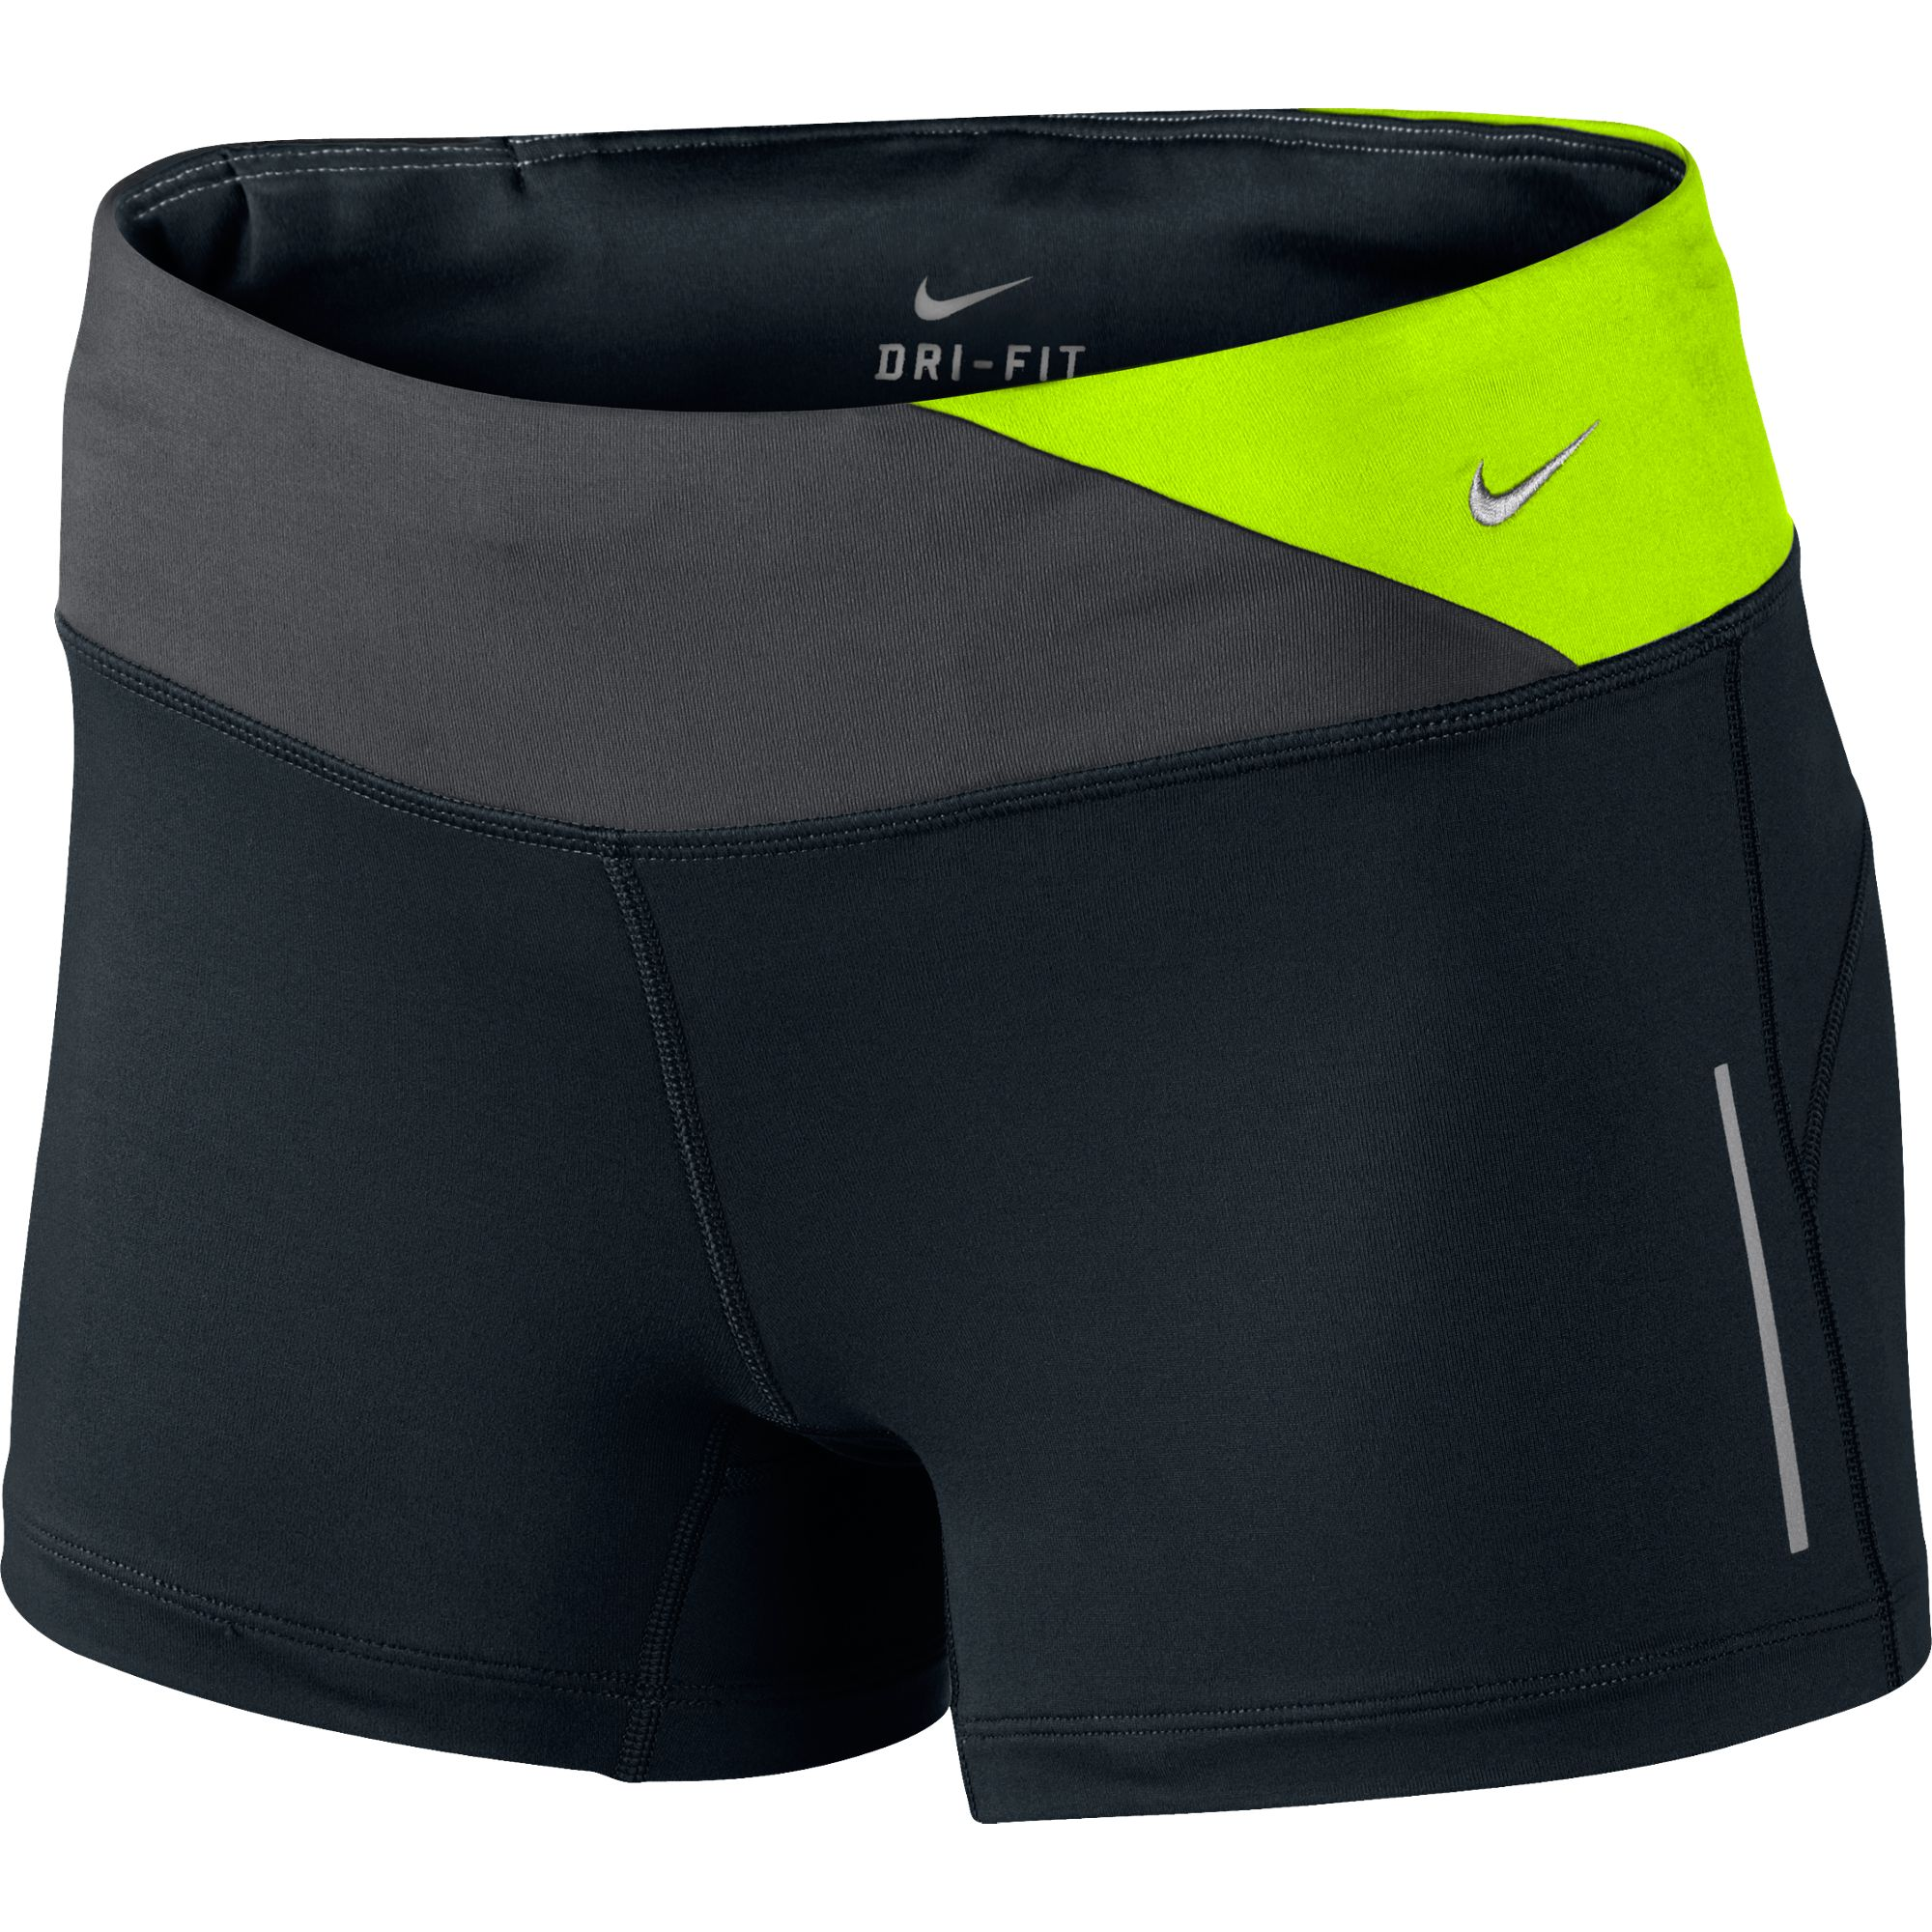 Wonderful Disappointed These Are A Really Great Pair Of Pants Ive Worn Nike Pants For Several Seasons And These Are Definitely Some Of The Most Comfortable, Especially For The Price The Spandex Infusion Makes Them Stretchy Which Is A Huge Plus For